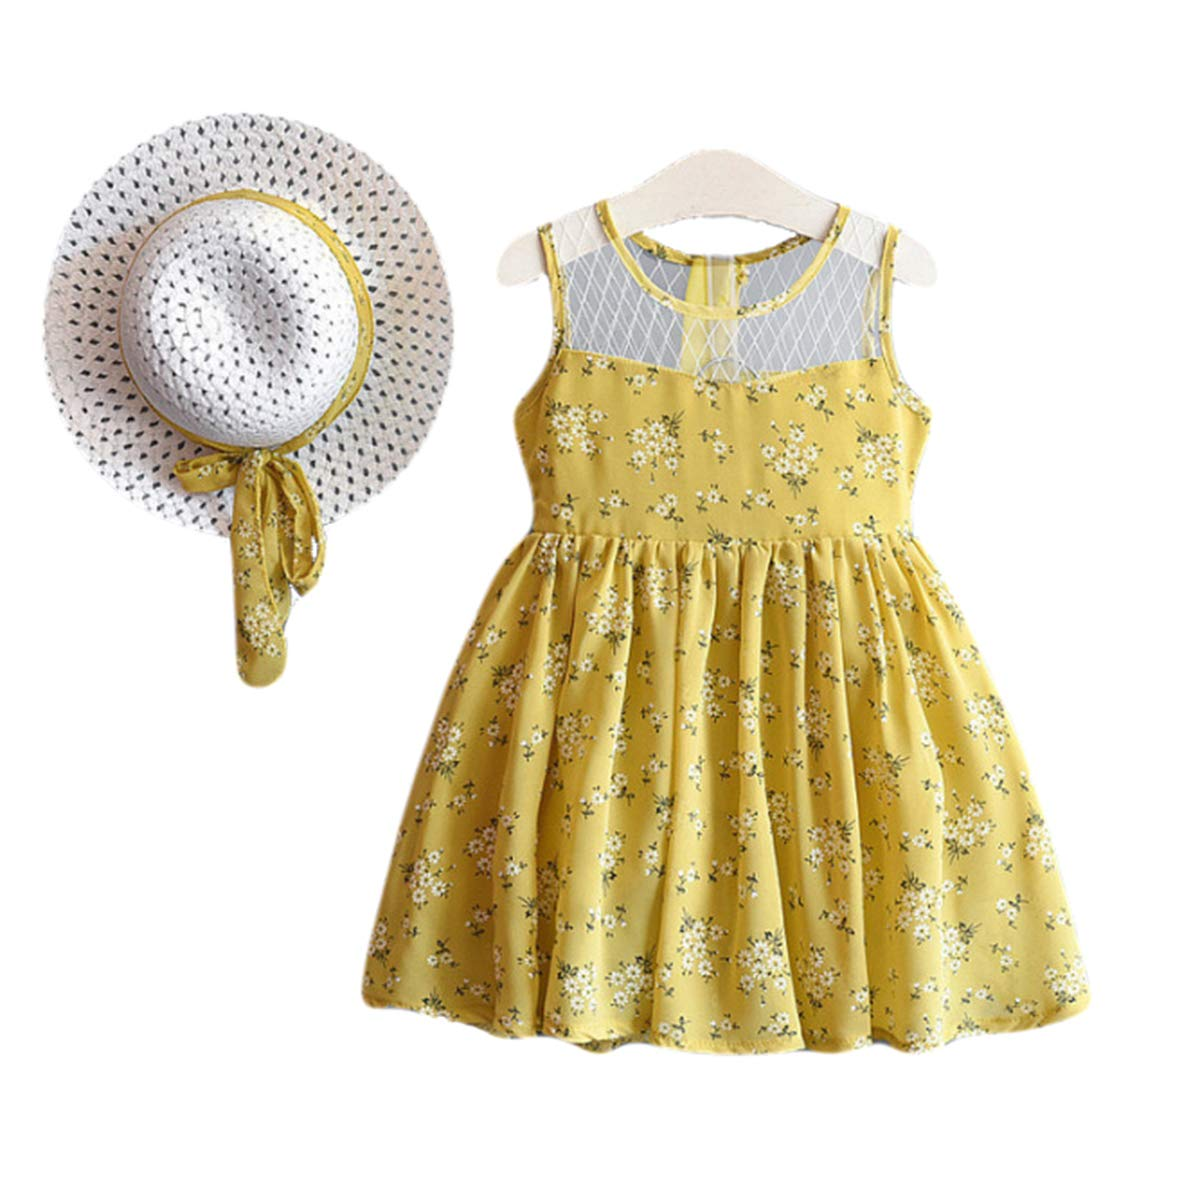 BONNY BILLY Baby Girl Spaghetti Strap Multicolour Floral Chiffon Summer Holiday Beach Dress for Toddlers